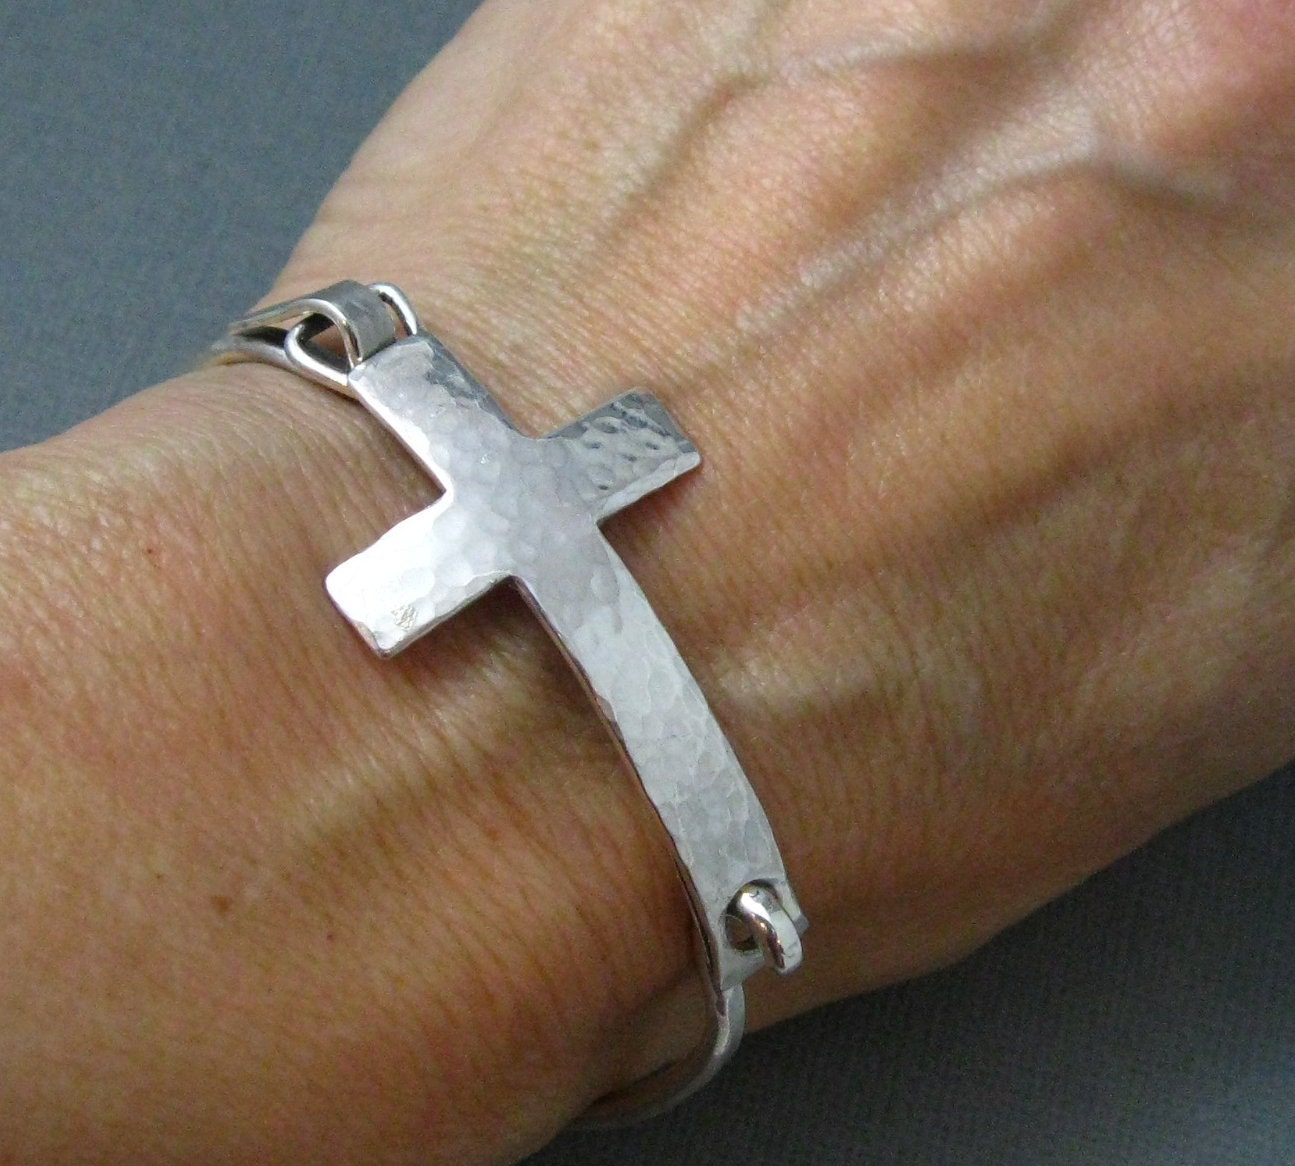 jewelry from bracelet gifts steel design row unisex cross bangle stainless for accessories xmas creative cable wire cuff on bangles item in